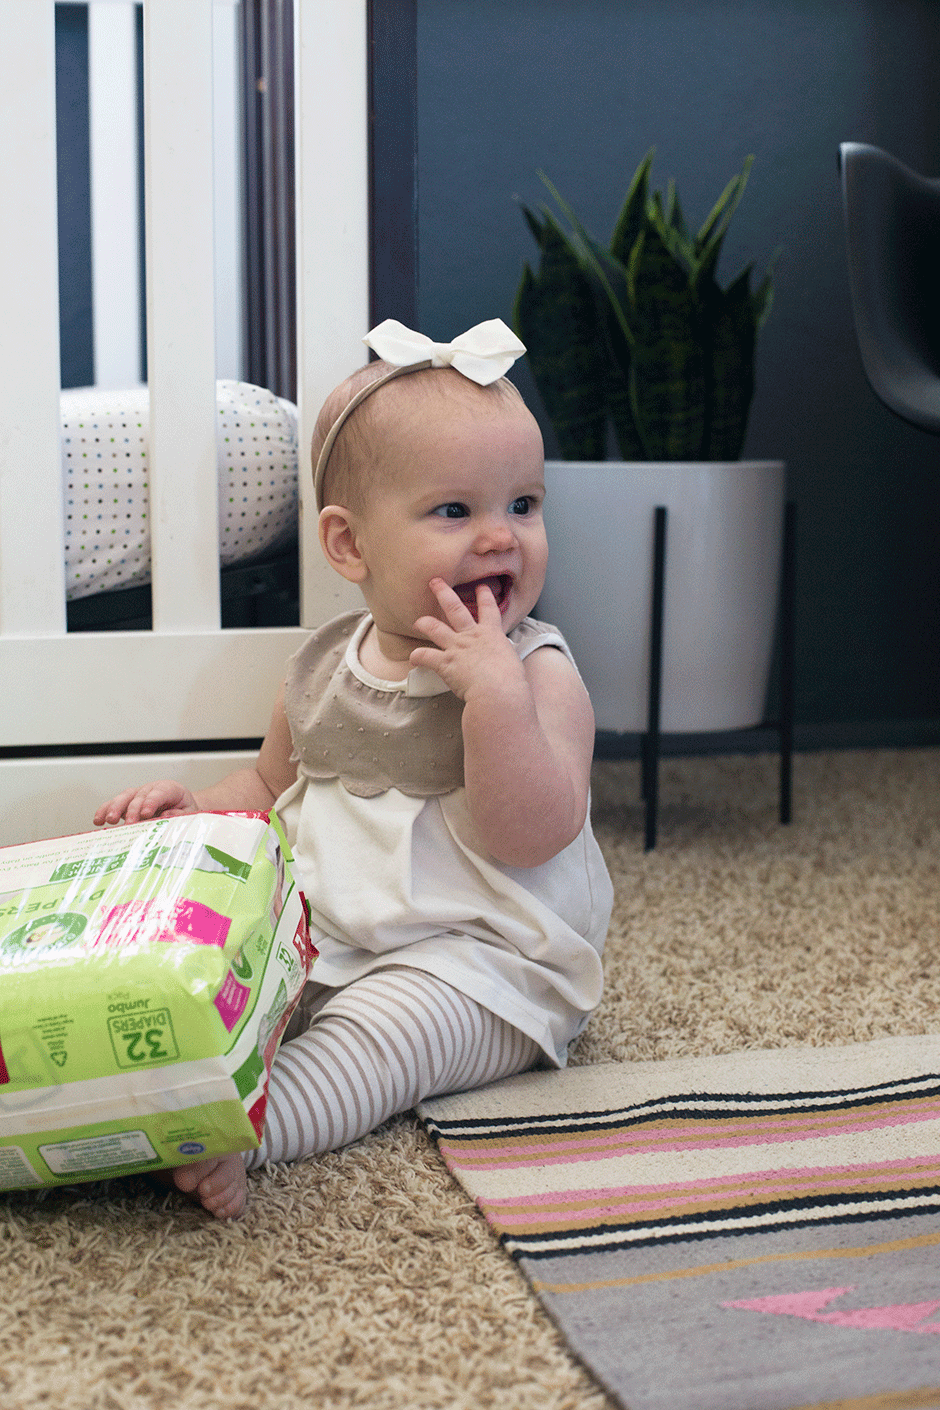 Baby's first 6 months is a glorious, awe-inspiring time, even if it is exhausting! Here's what to know to prepare you for the beginning months of your baby's life.